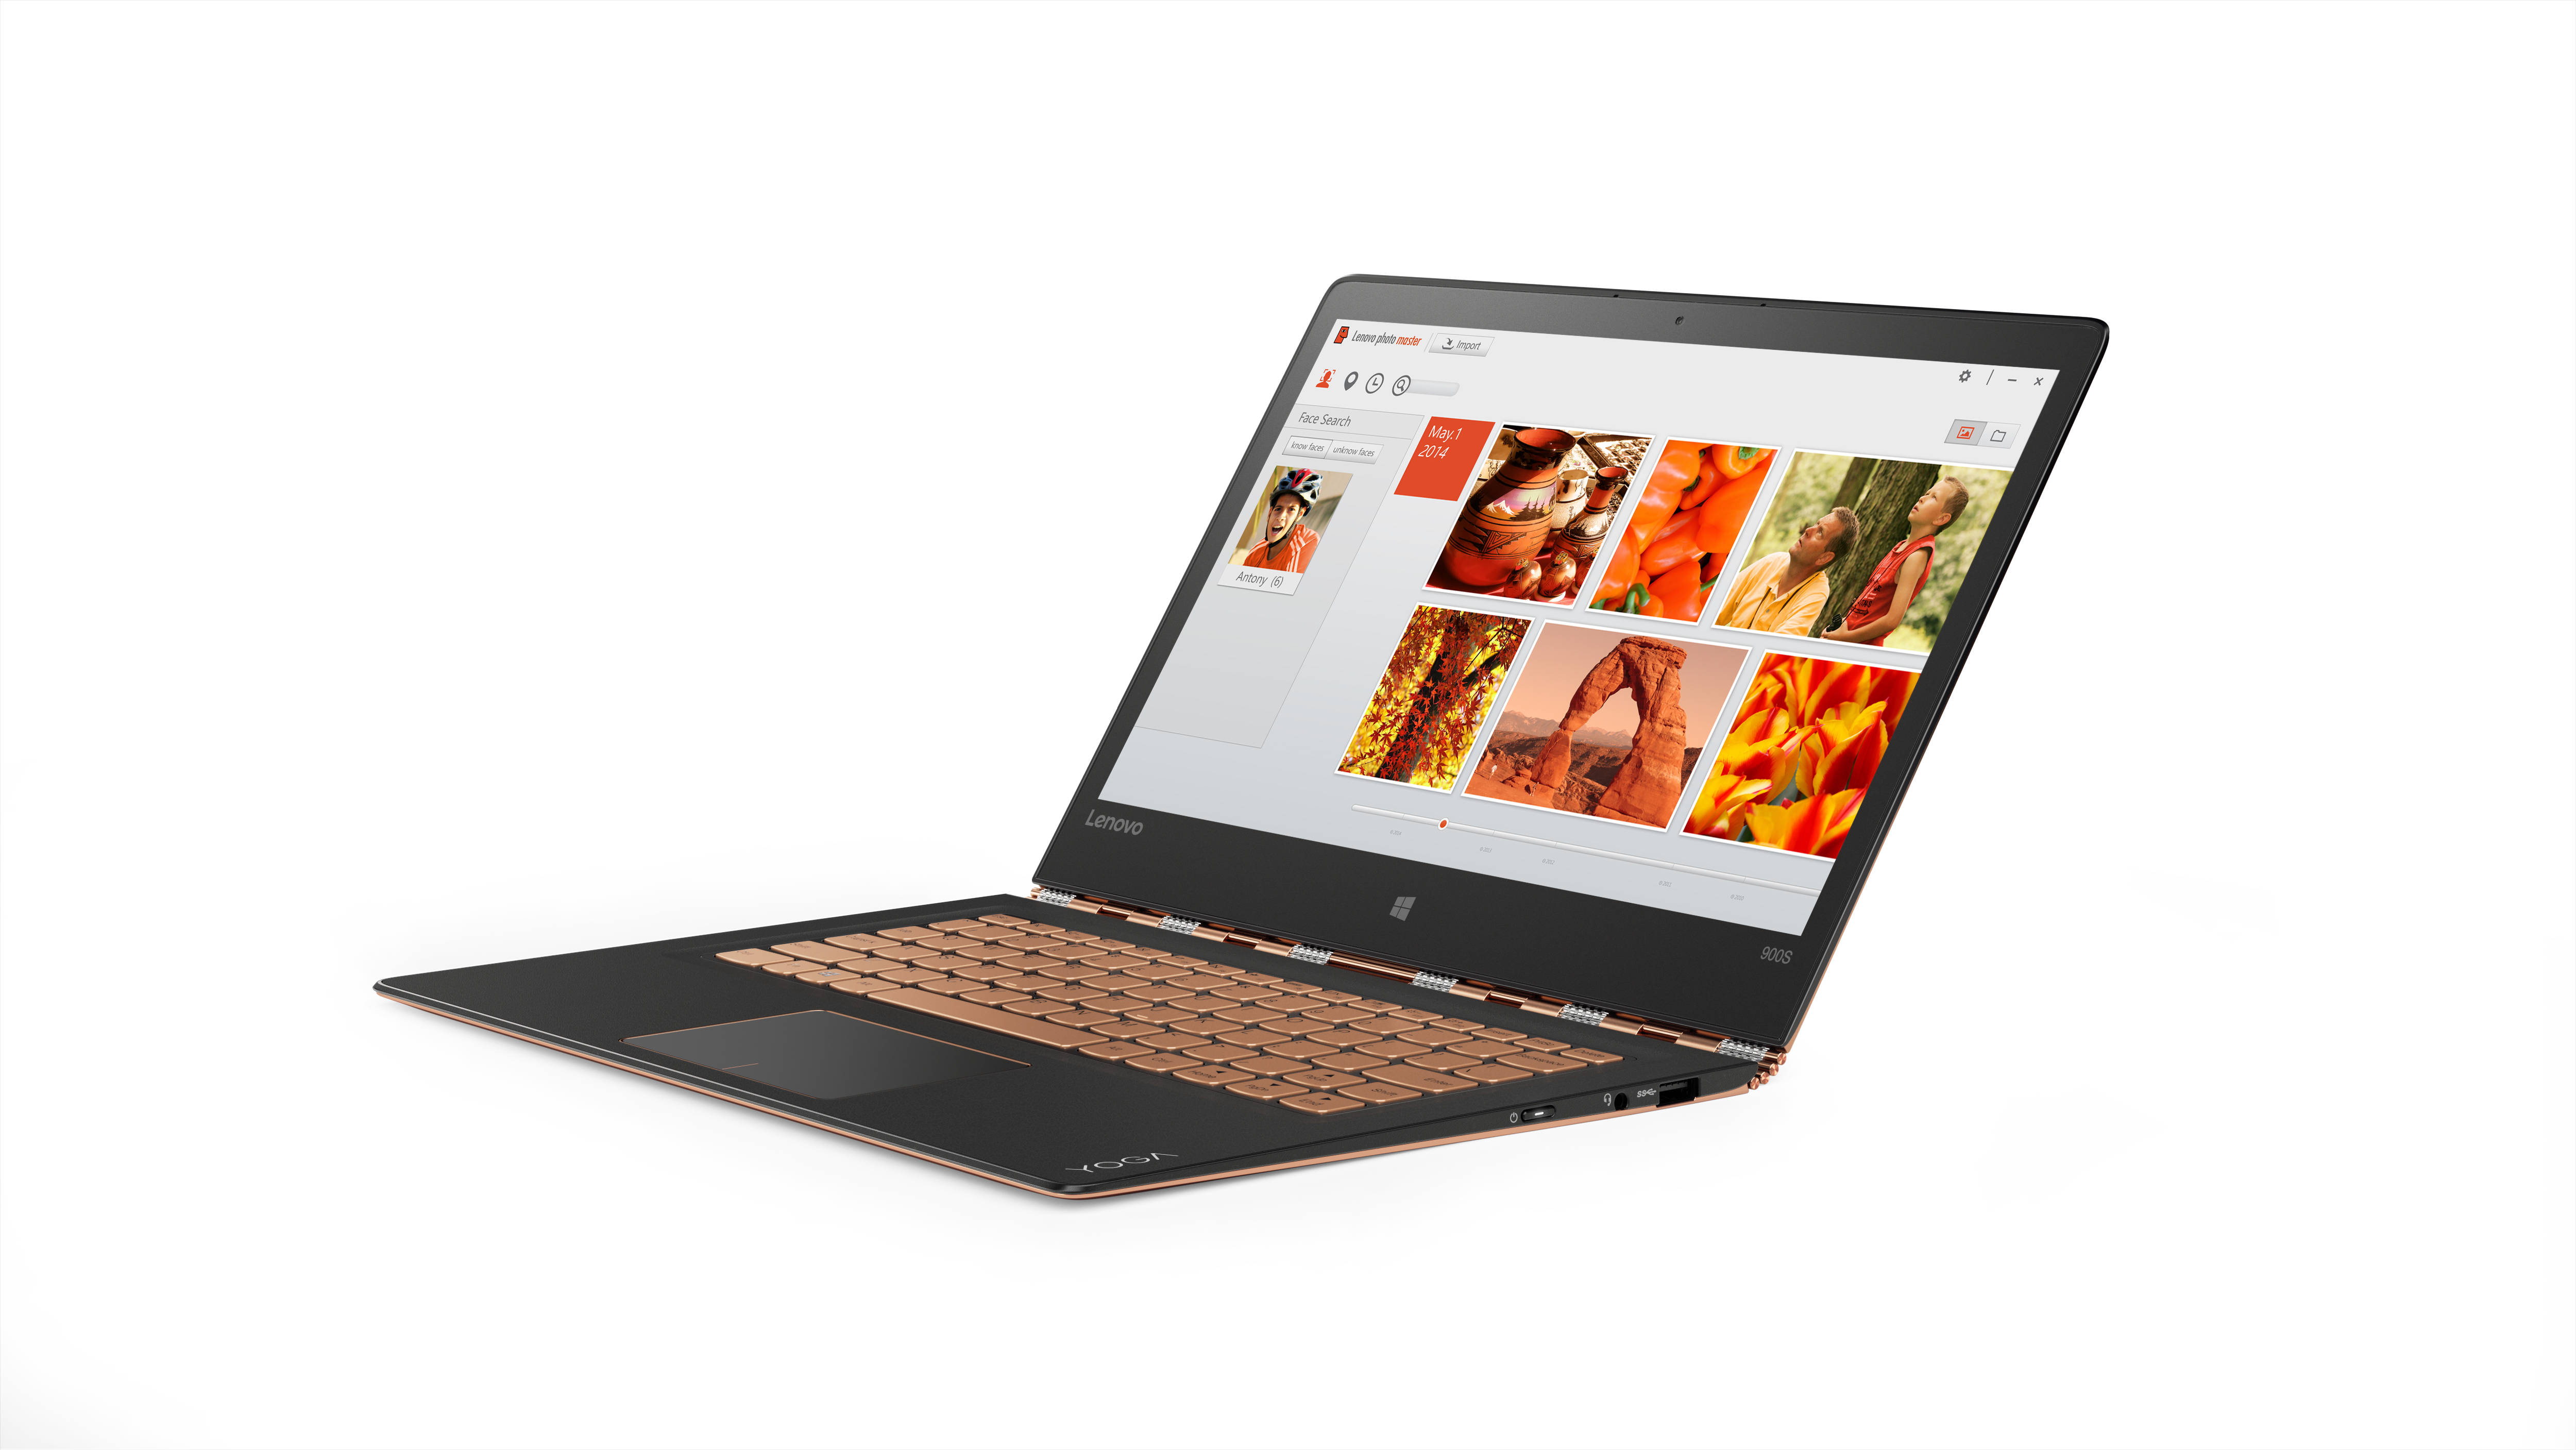 "Lenovo YOGA 900S-12ISK M5-6Y54 2,70GHz/8GB/256GB SSD/12,5"" QHD/IPS/multitouch/WIN10 PRO zlatá 80ML004VCK"